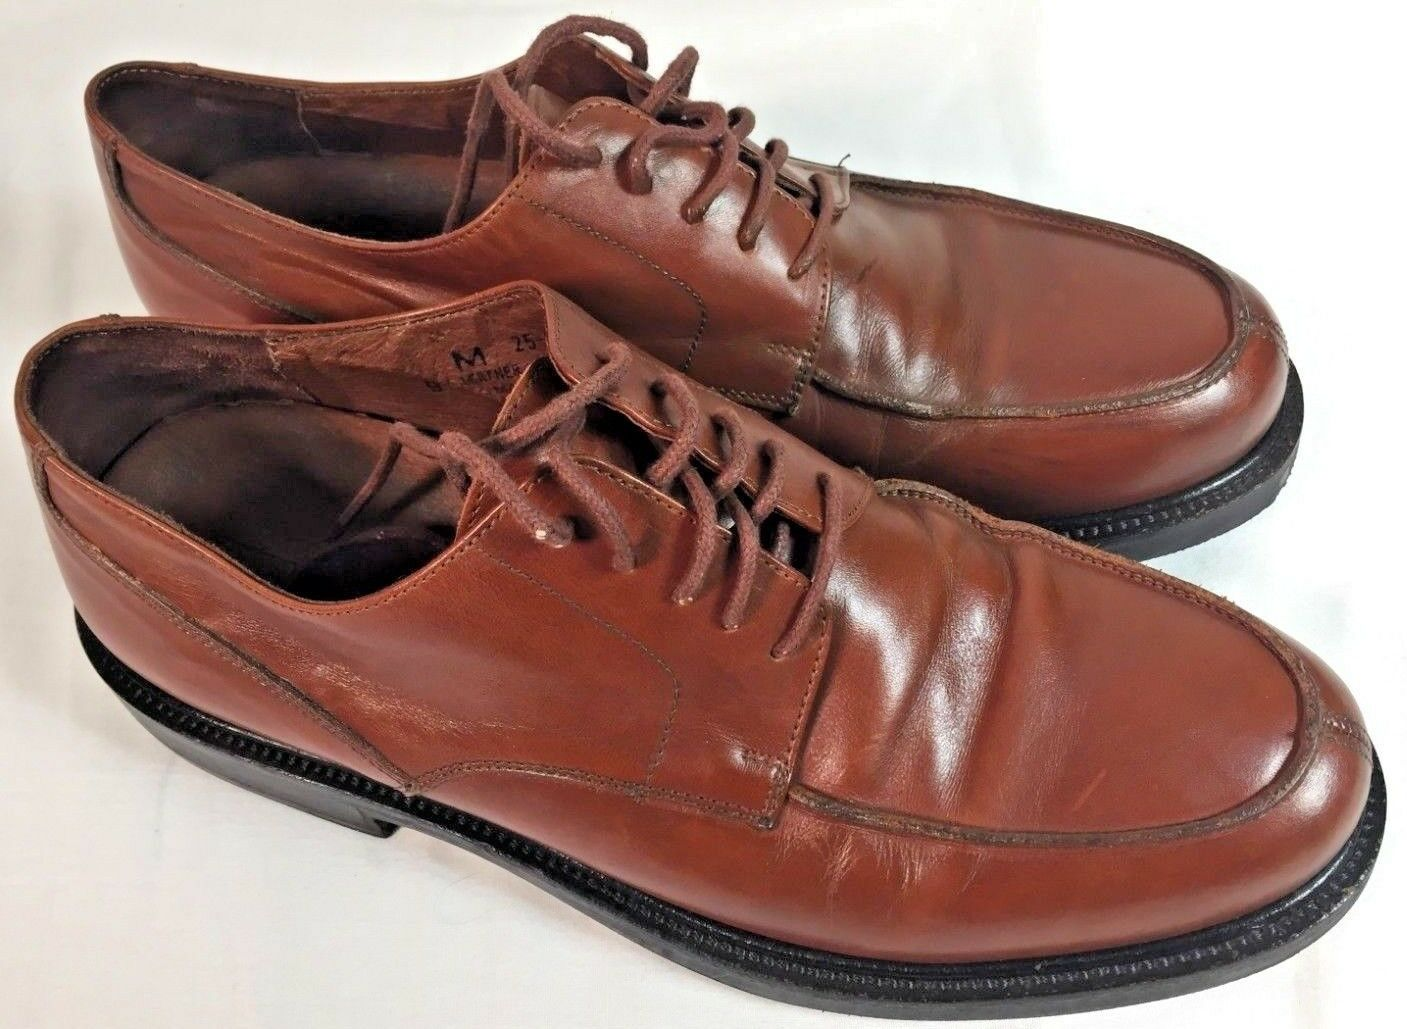 Johnston & Murphy Express Made In Italy Men's Brown Leather Derby Shoe Oxford 9M